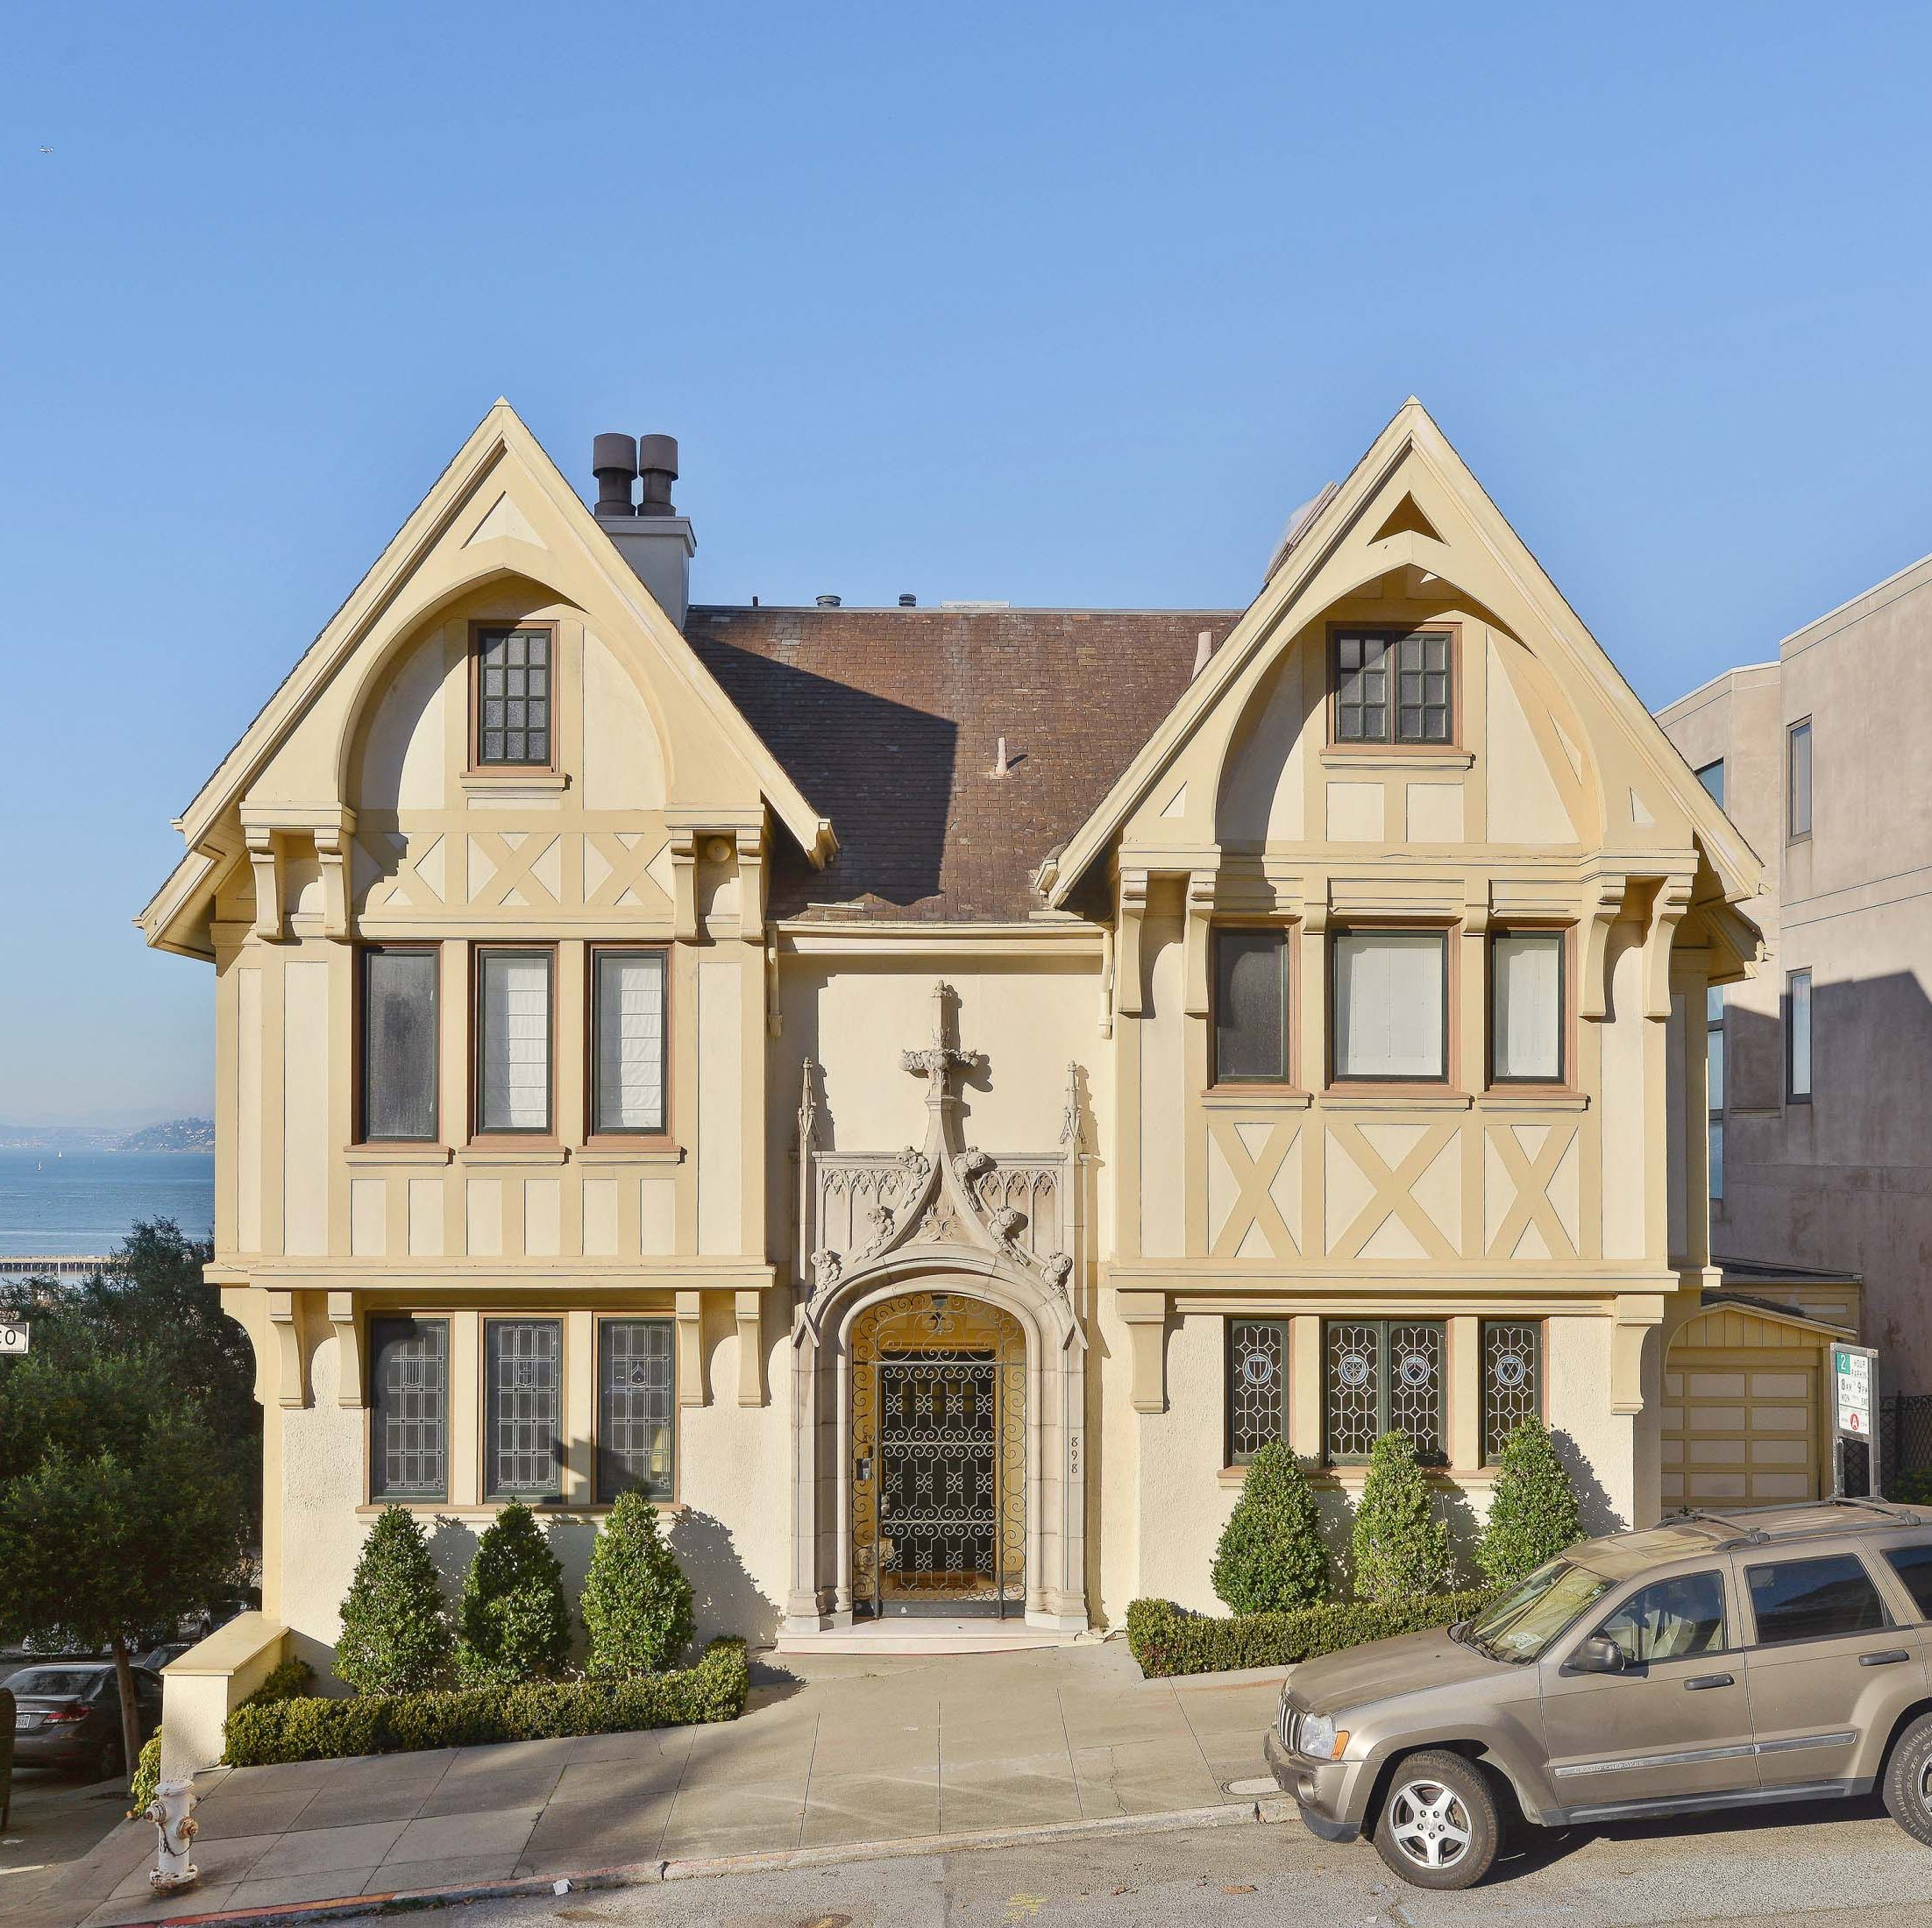 Nicolas Cage's six-bedroom house in San Francisco is up for sale